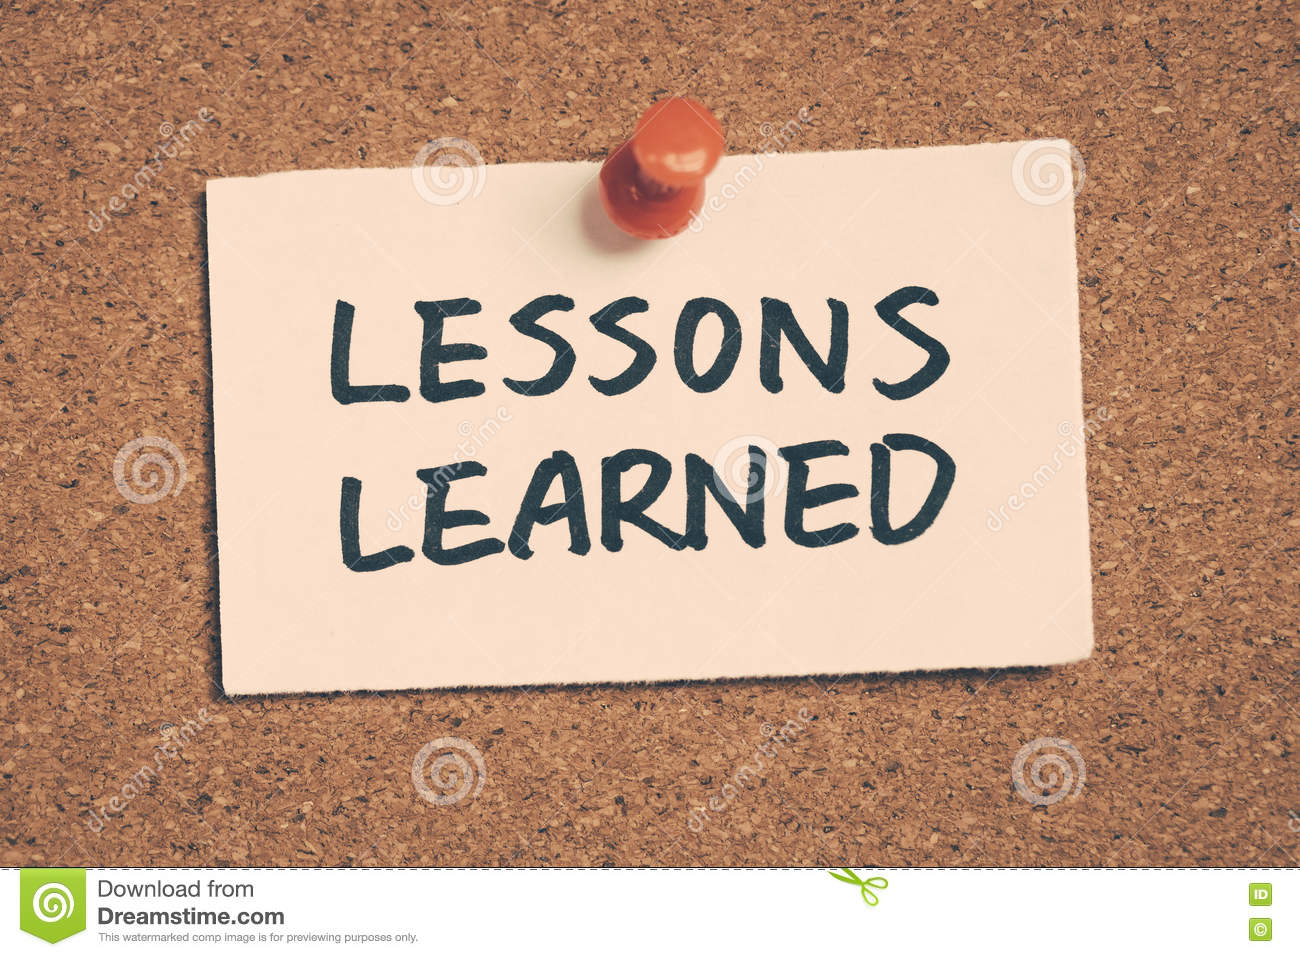 lessons learned paper Lessons learned paper steven university of phoenix lessons learned paper critical thinking i learned so much more about critical thinking then i ever knew before i attended this class.